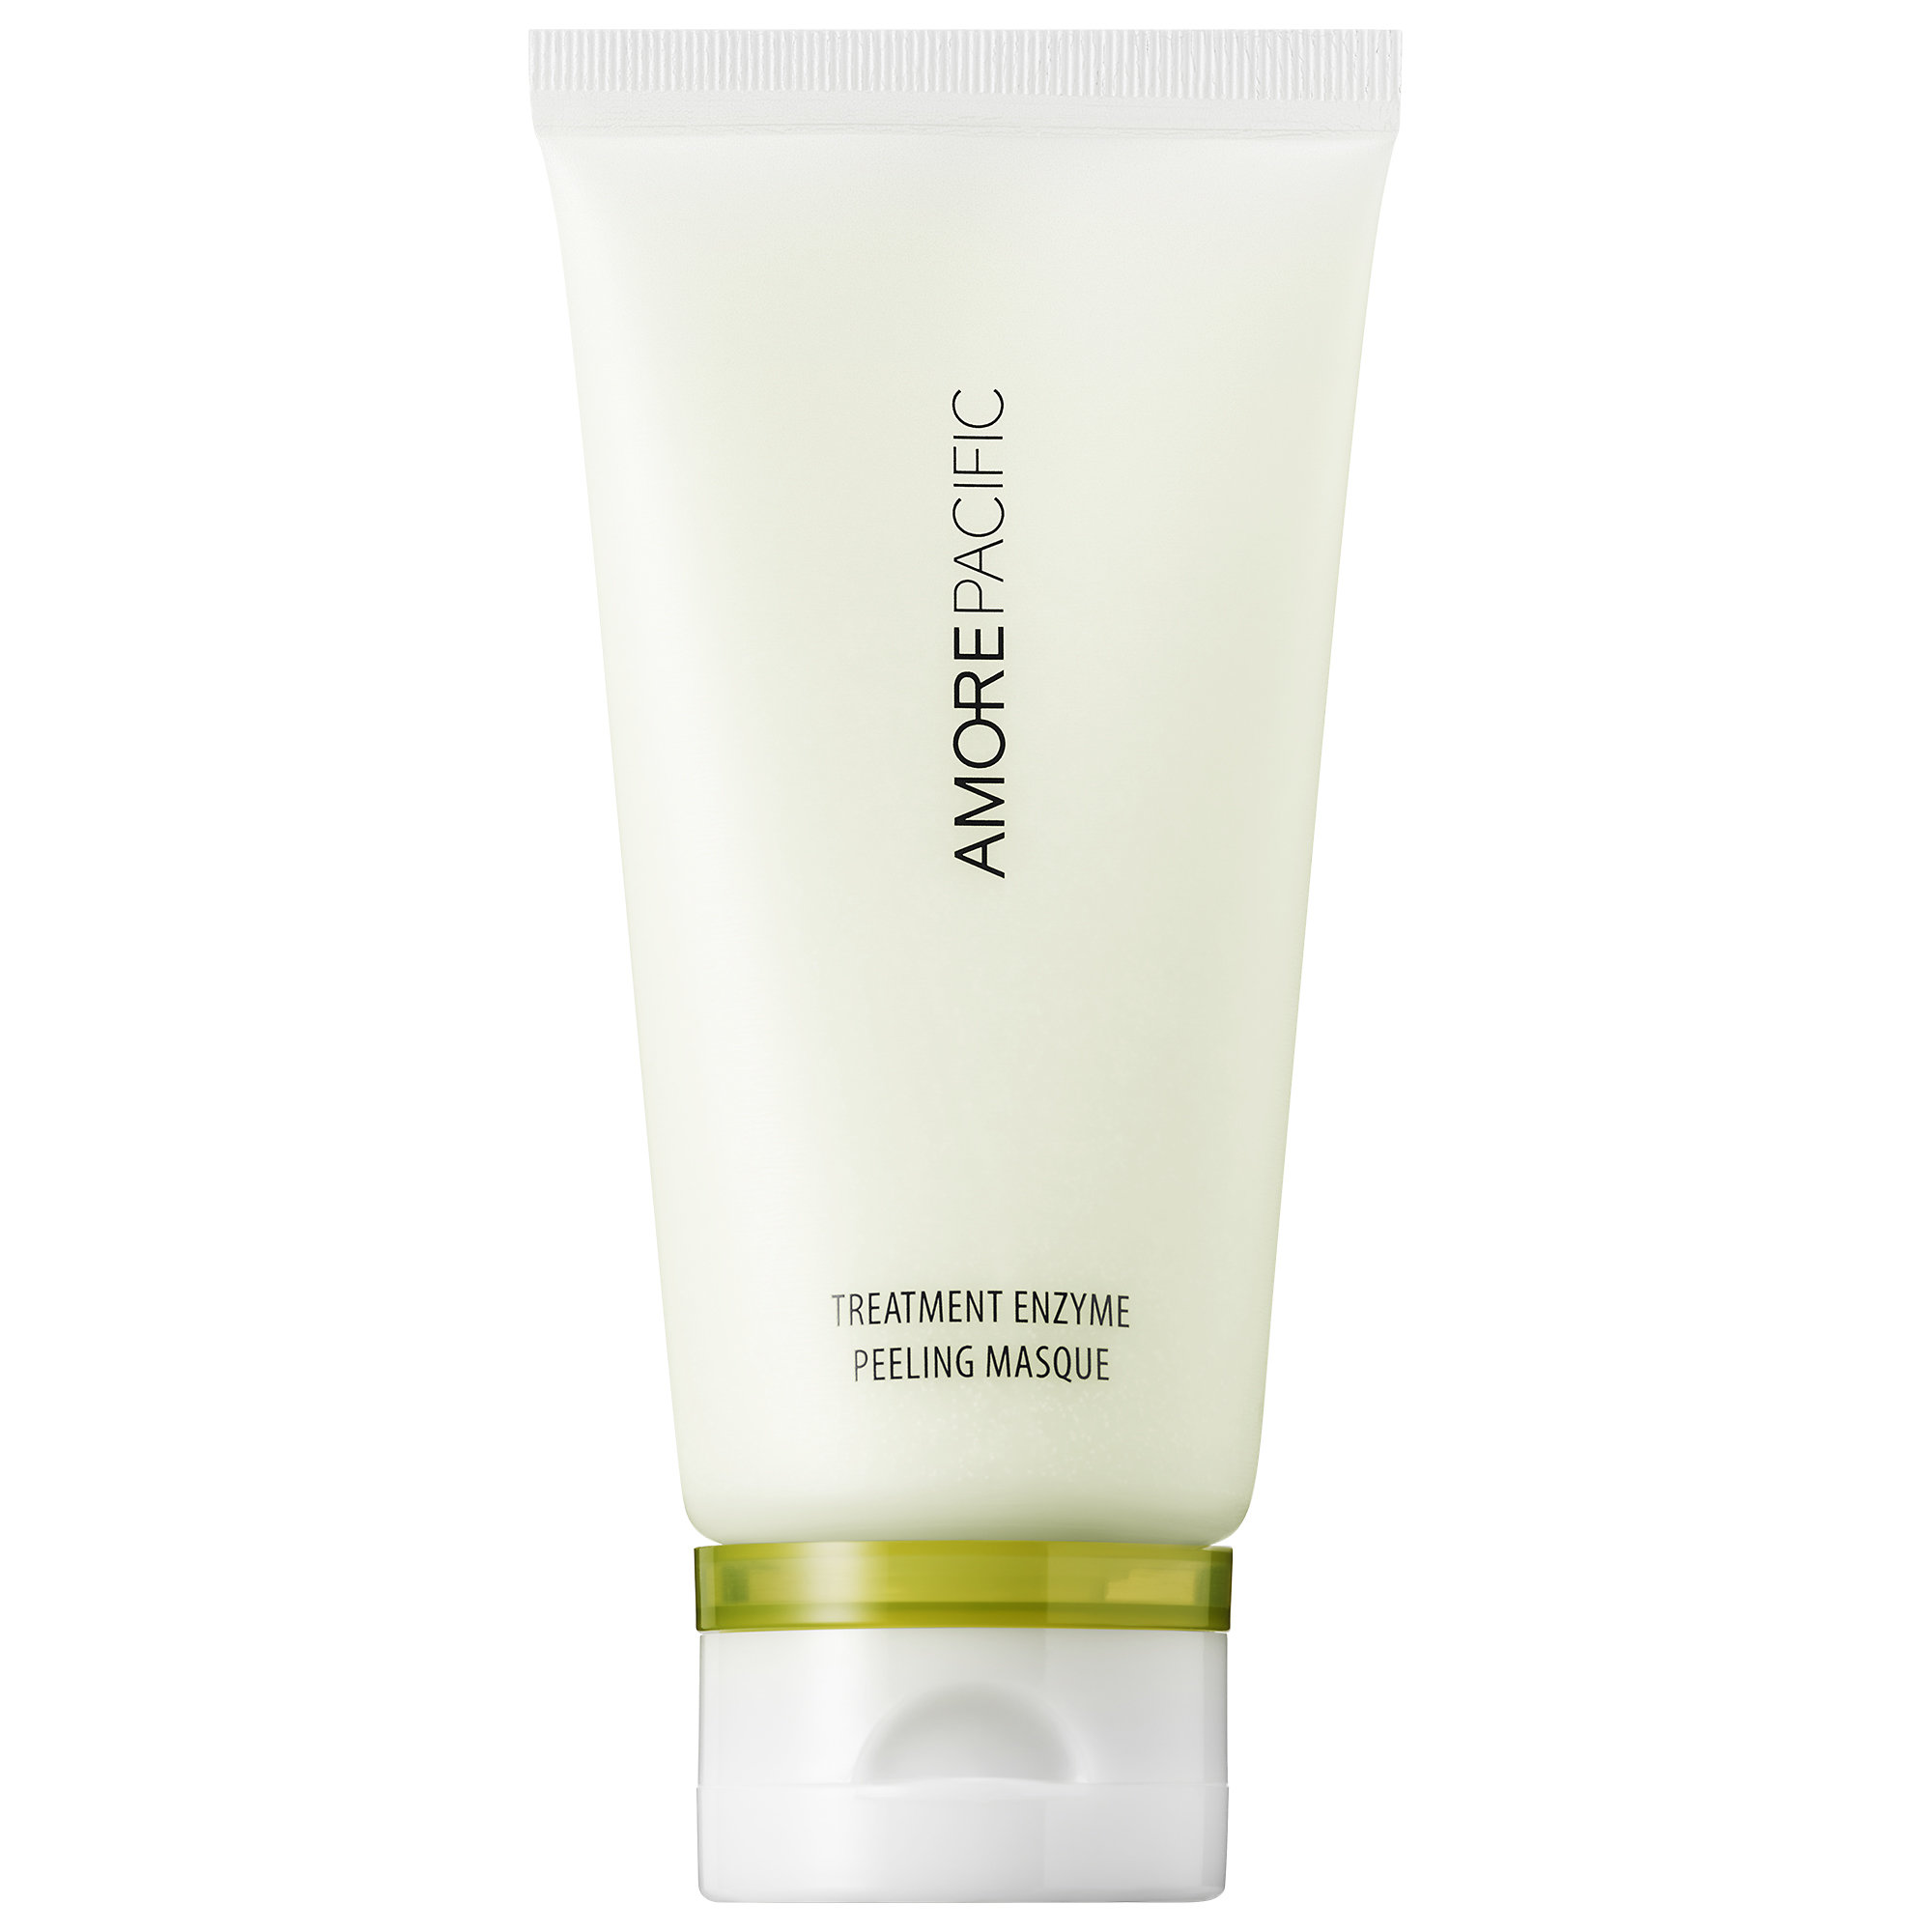 Amorepacific - Treatment Enzyme Peeling Masque